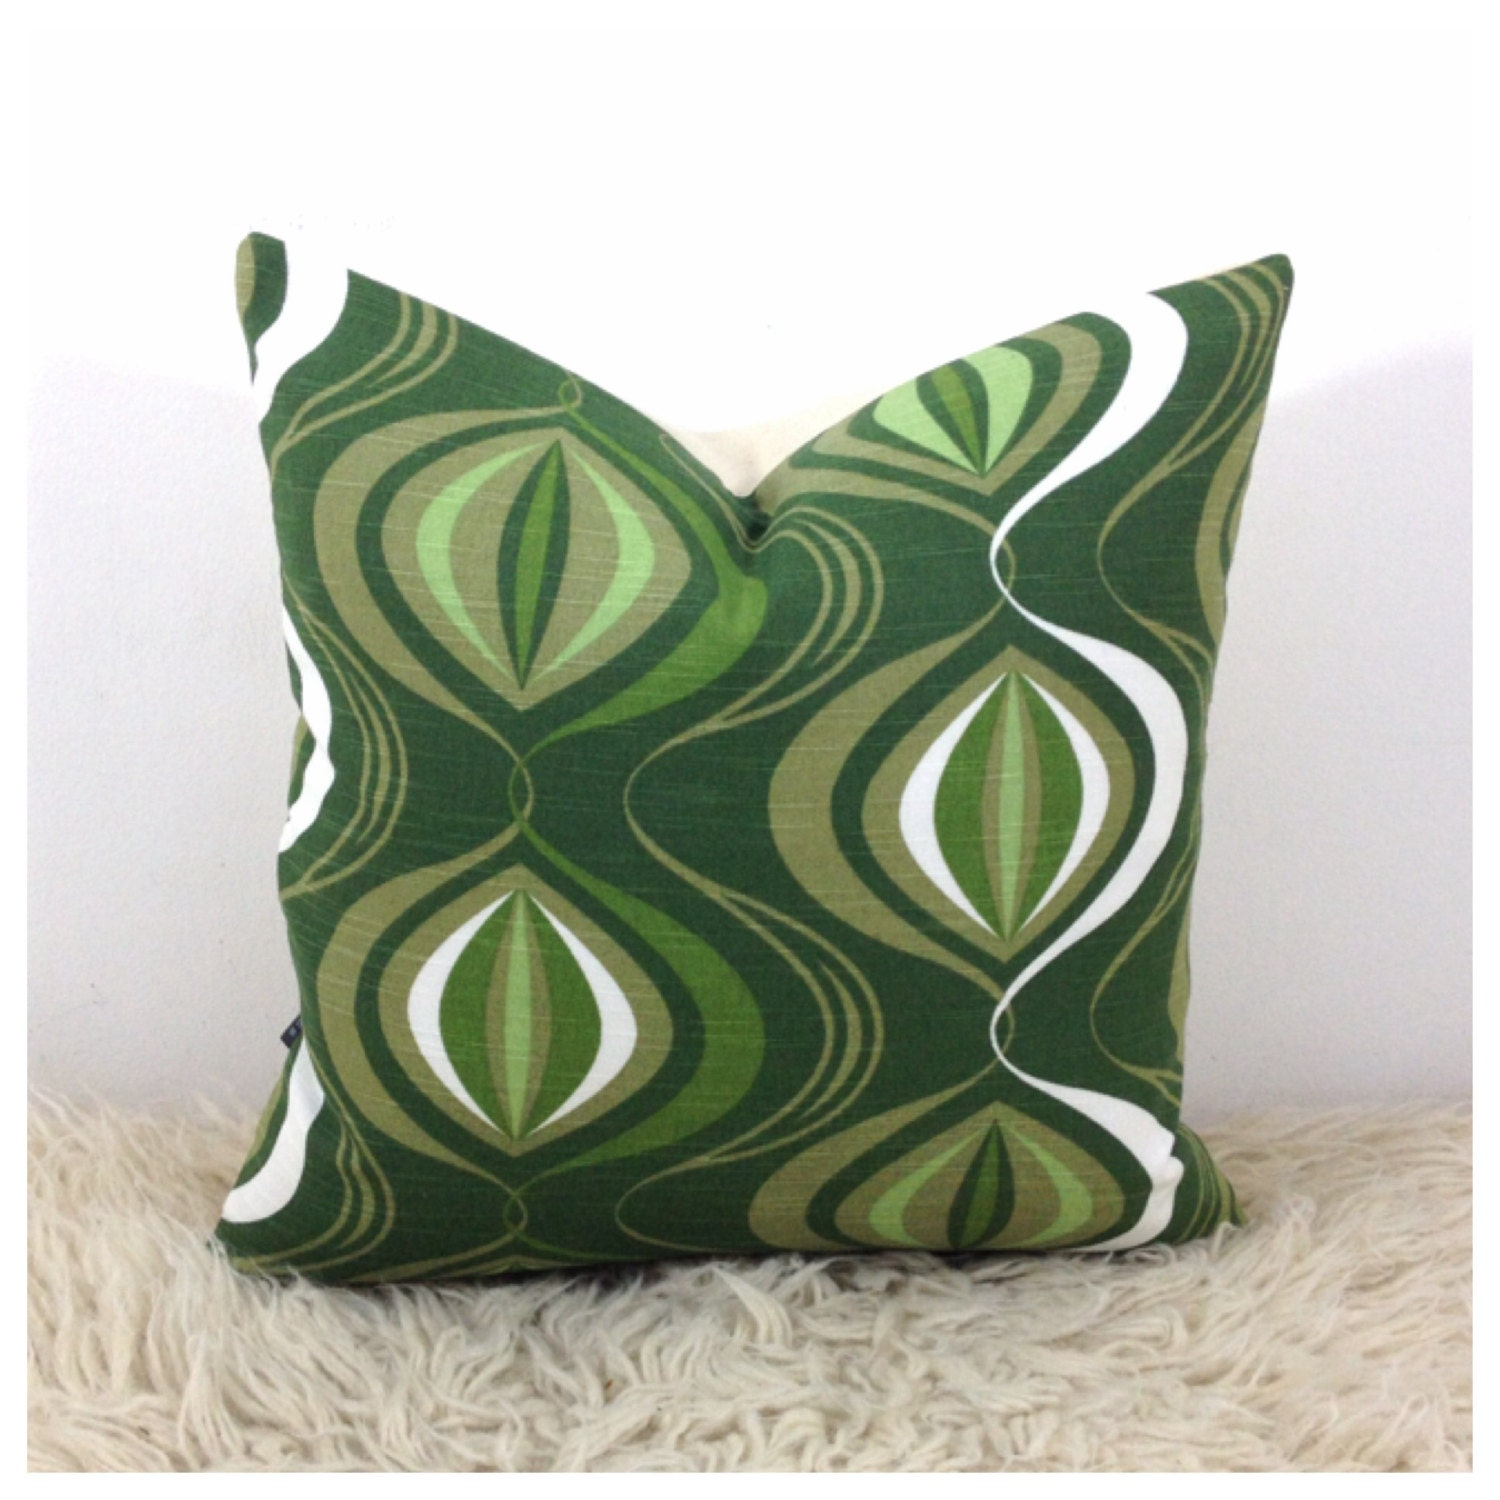 Throw Pillow Cover 1970s Vintage Fabric 16 x 16